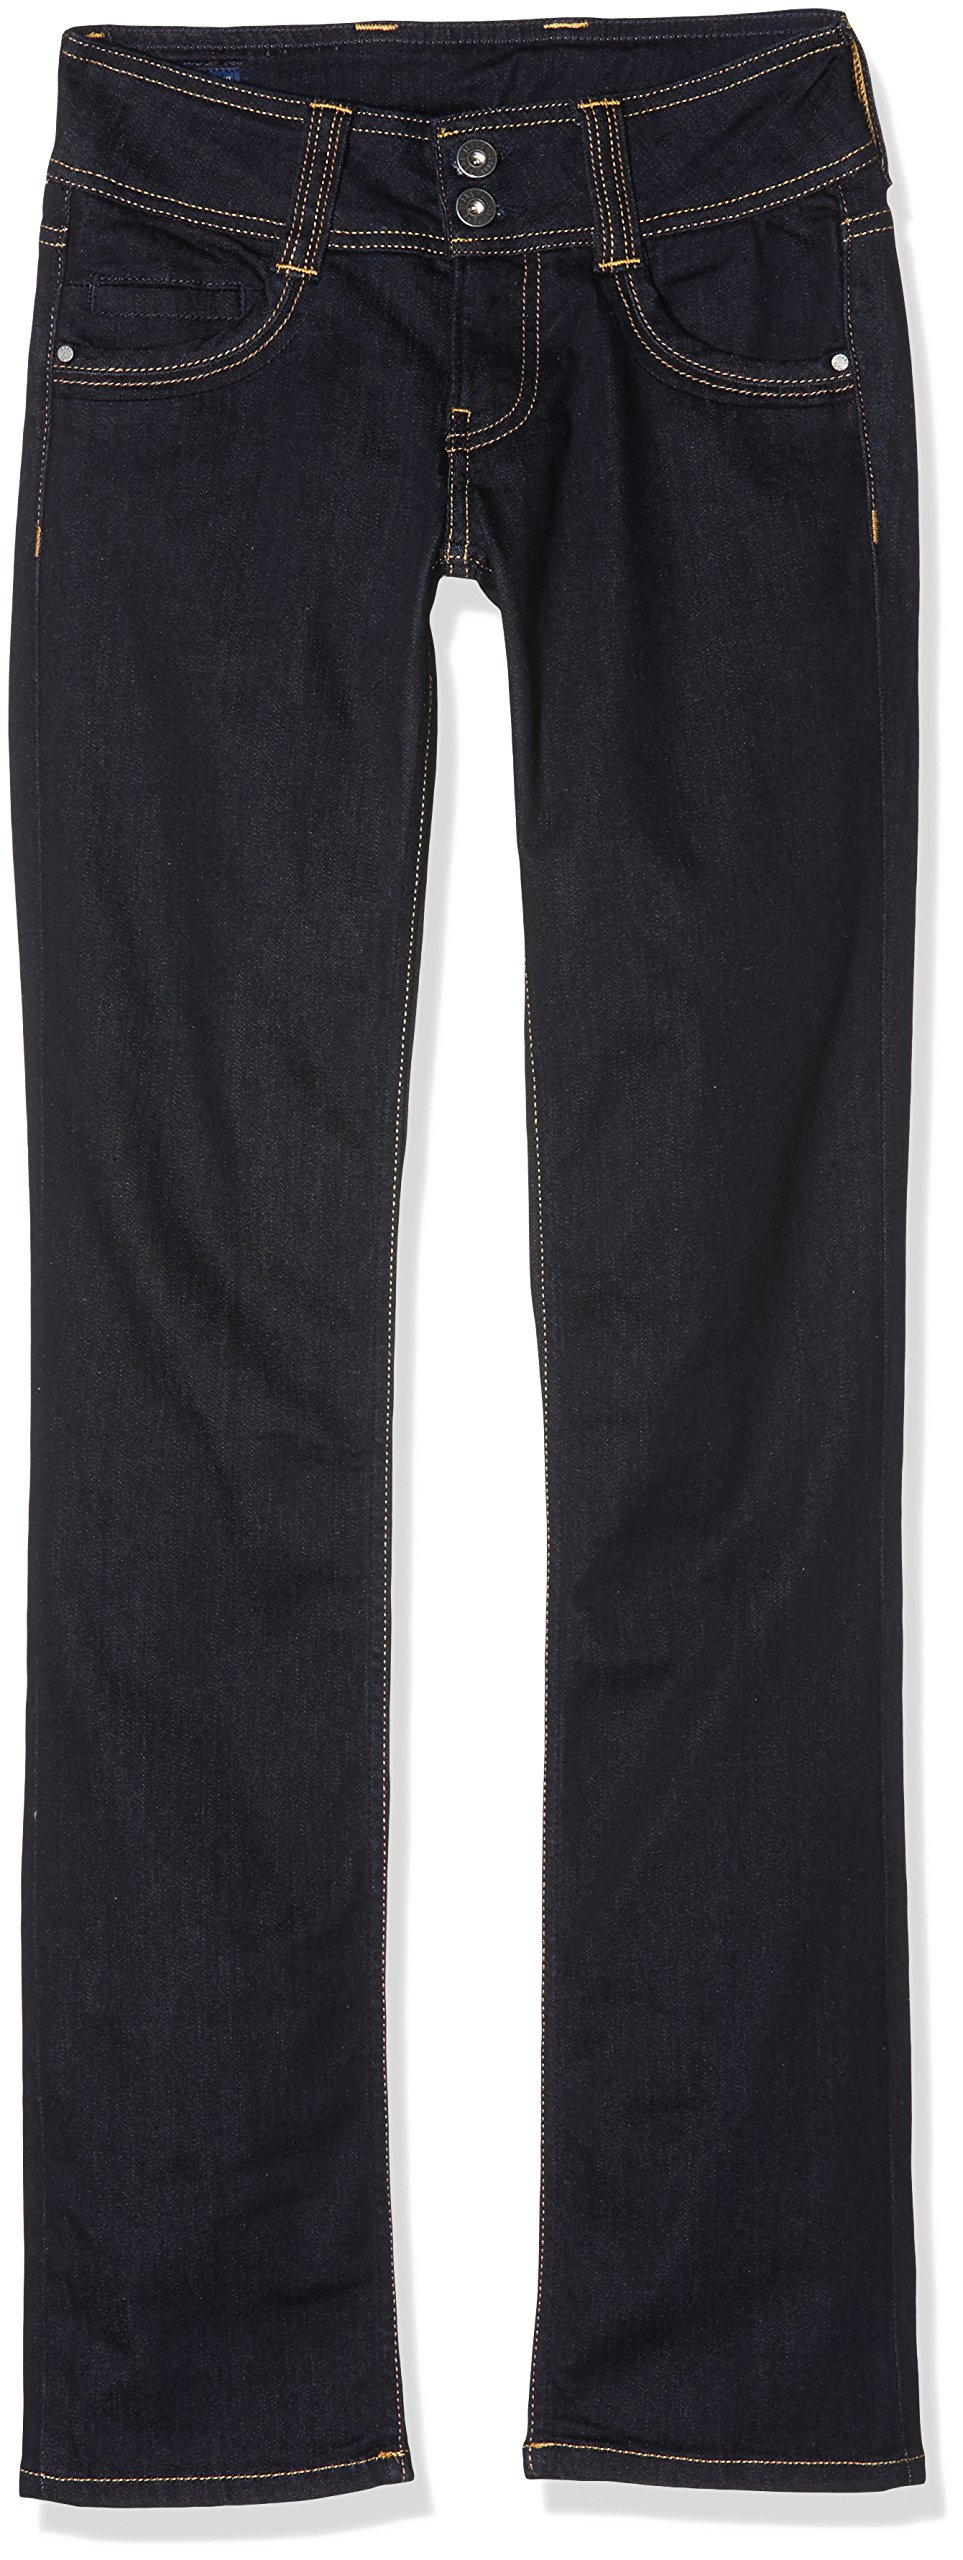 Pepe Jeans Womens Gen Straight Jeans Blue Size 28 Length 32